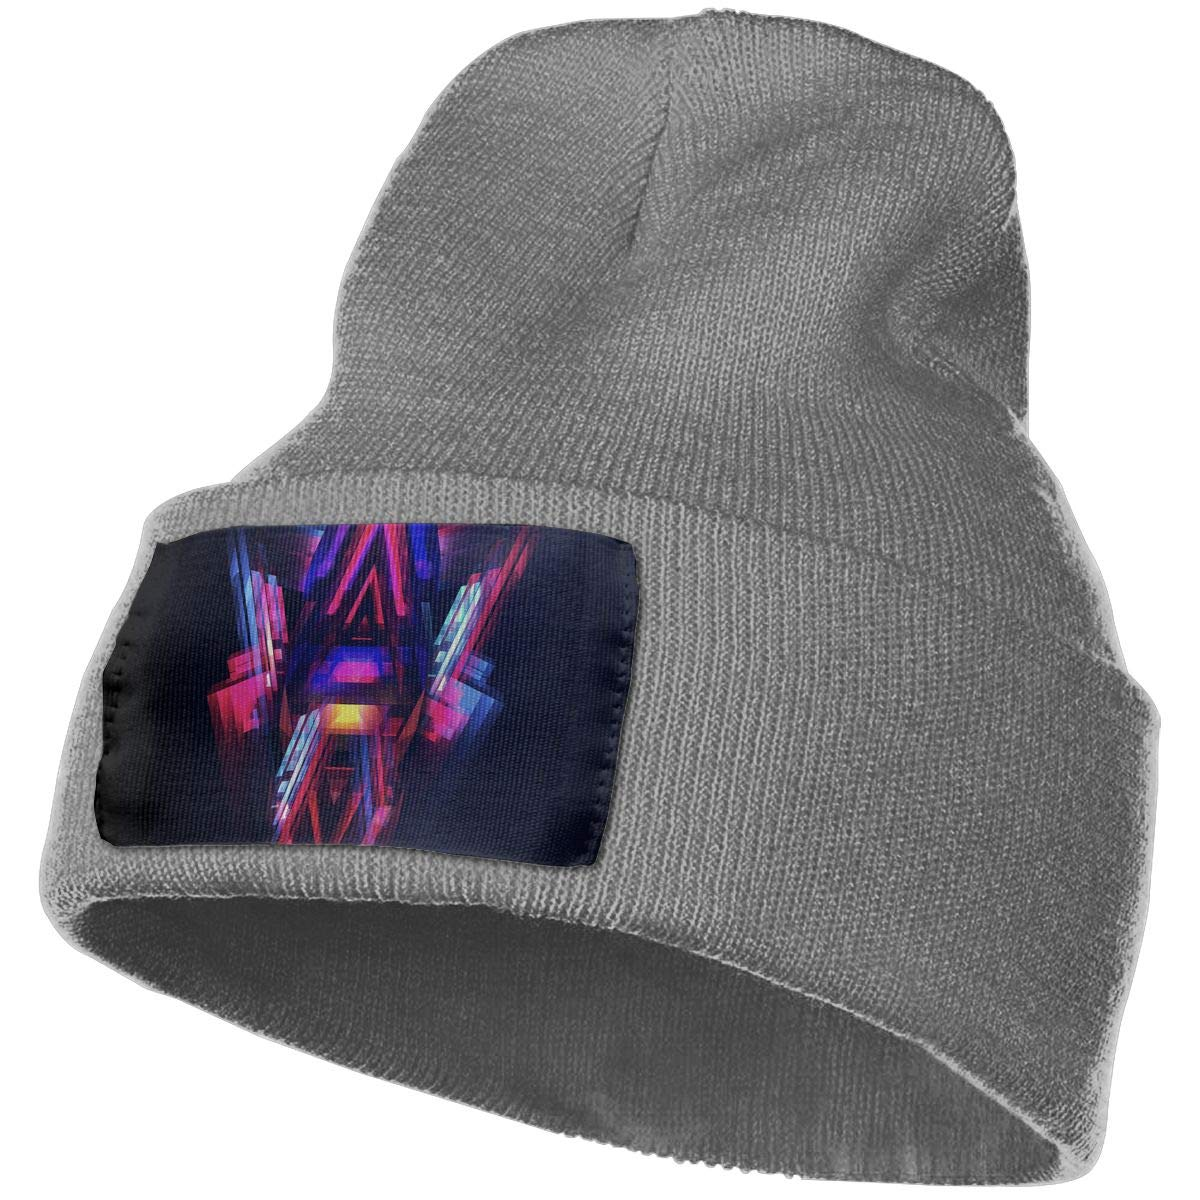 JimHappy Abstract Star Painting Hat for Men and Women Winter Warm Hats Knit Slouchy Thick Skull Cap Black